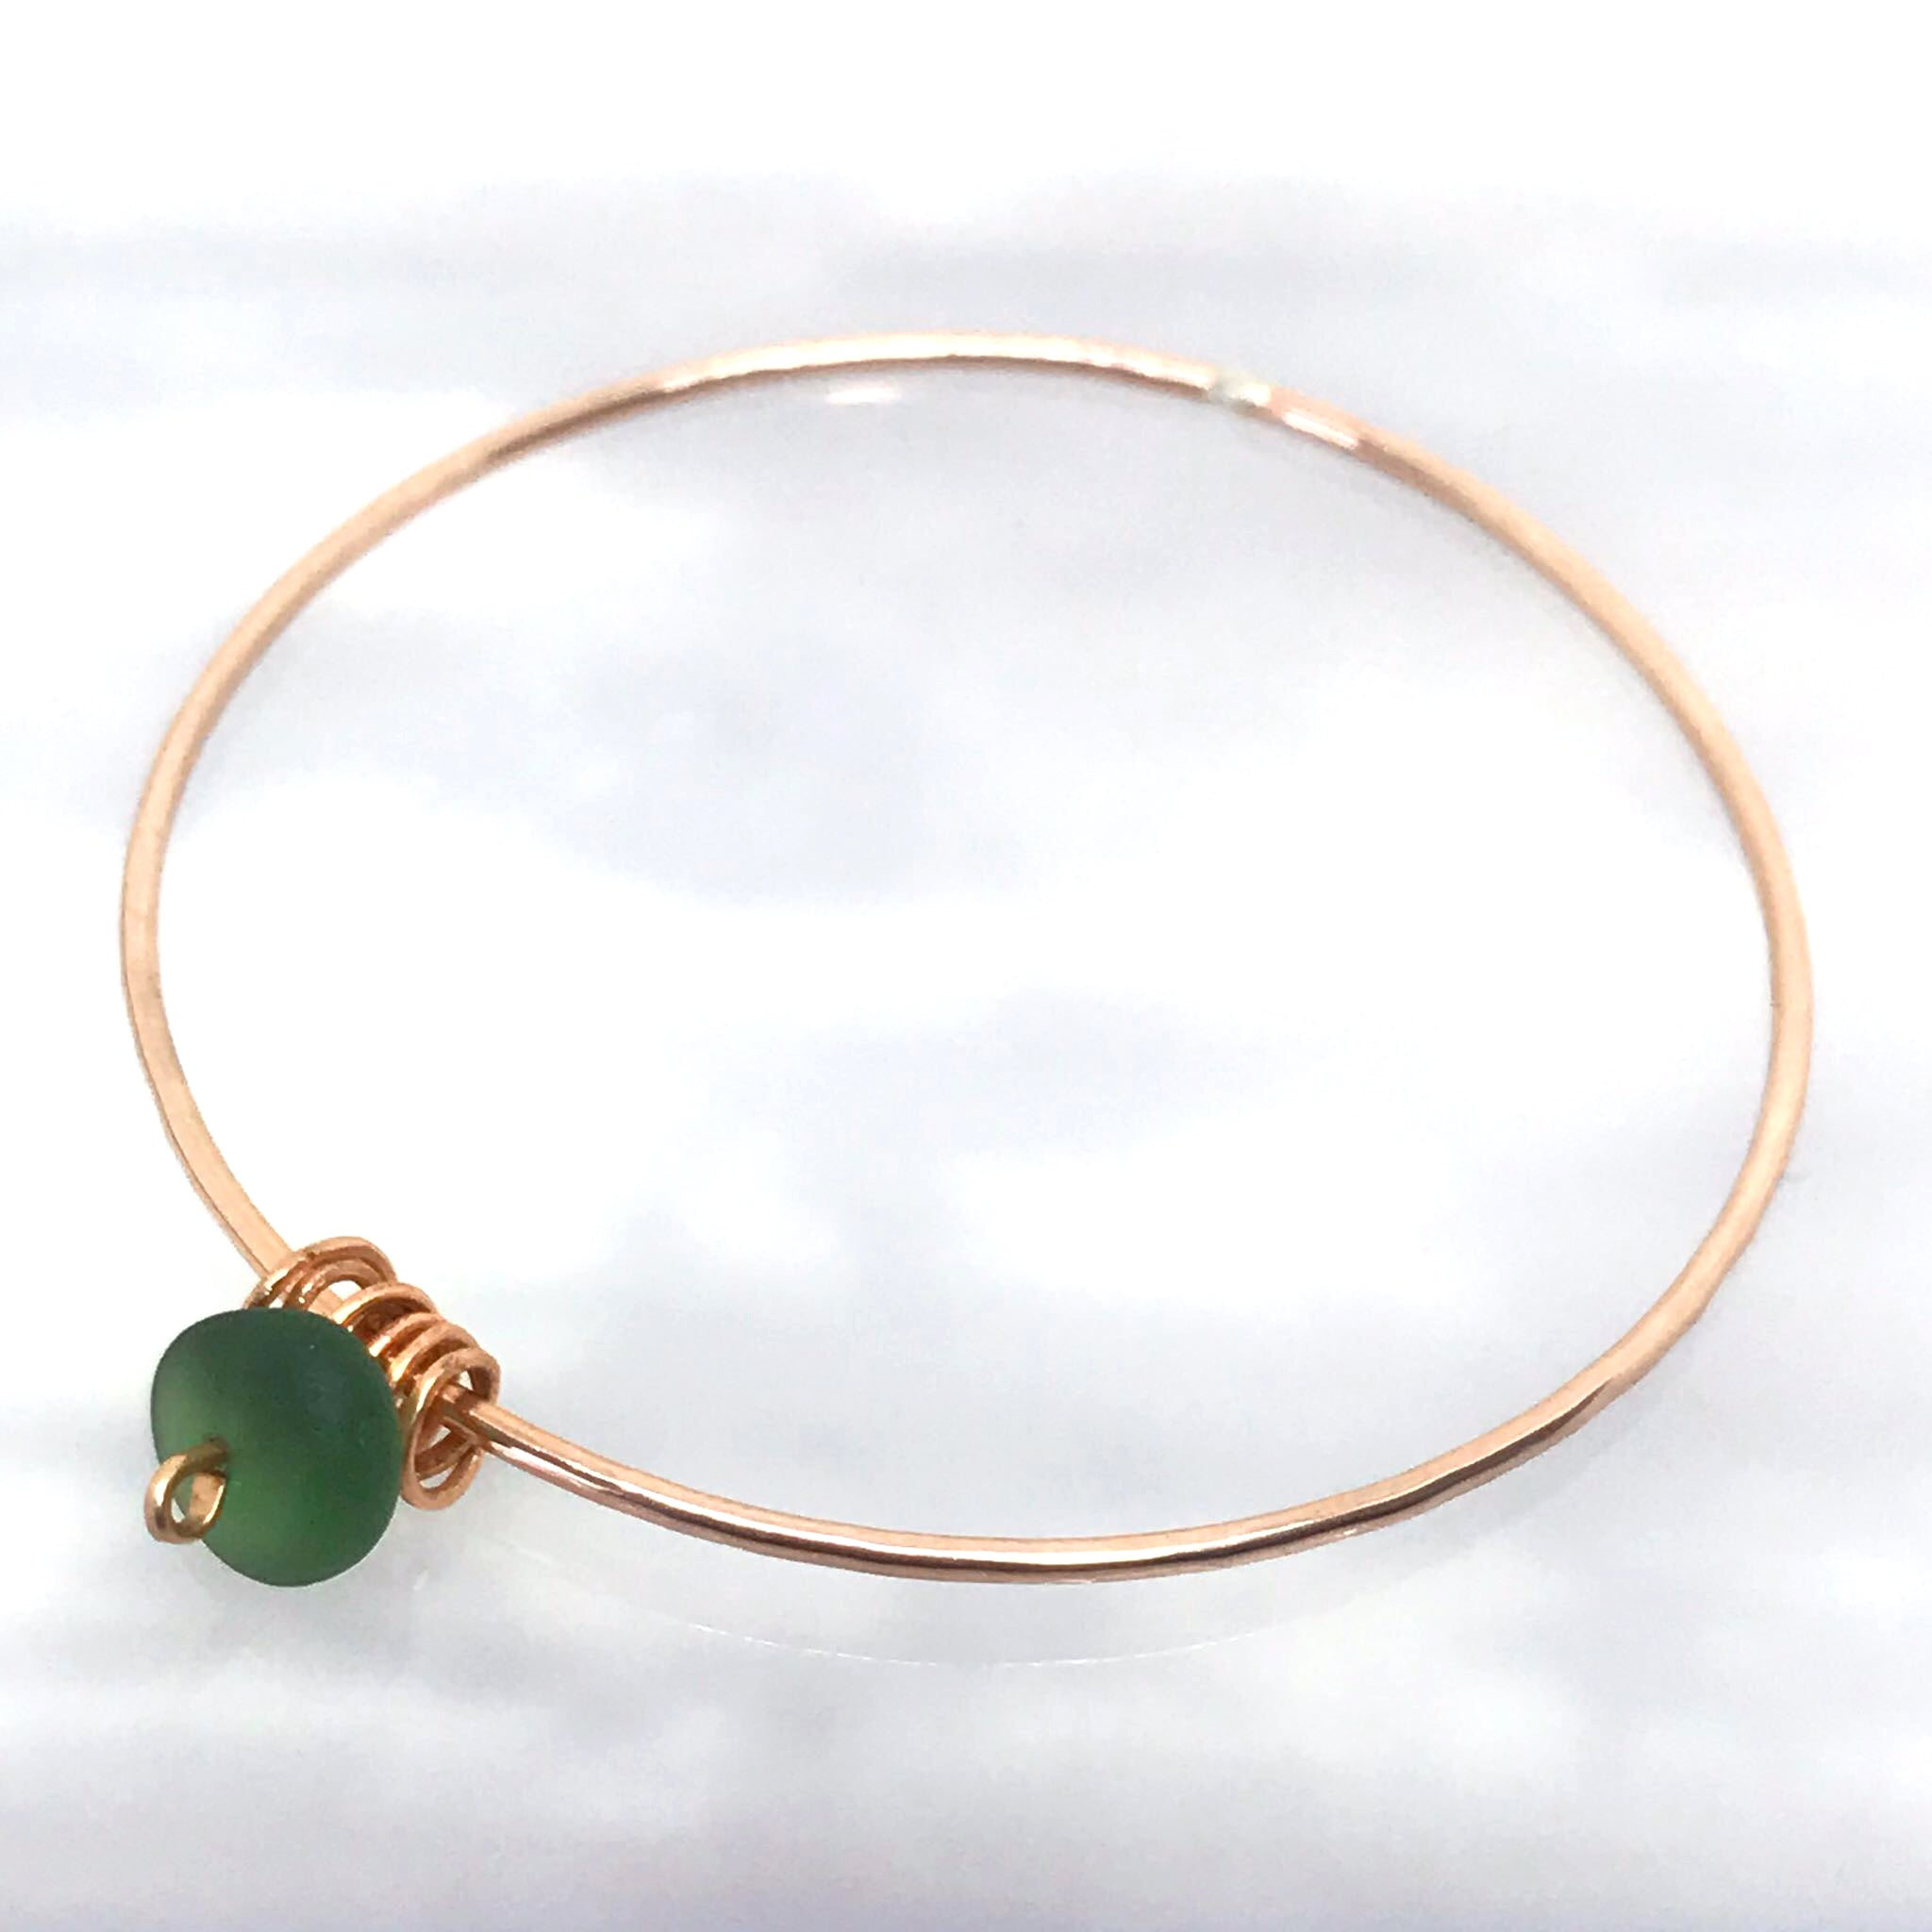 Rose gold & Olive Green Antique Seaglass Bangle - kriket-broadhurst